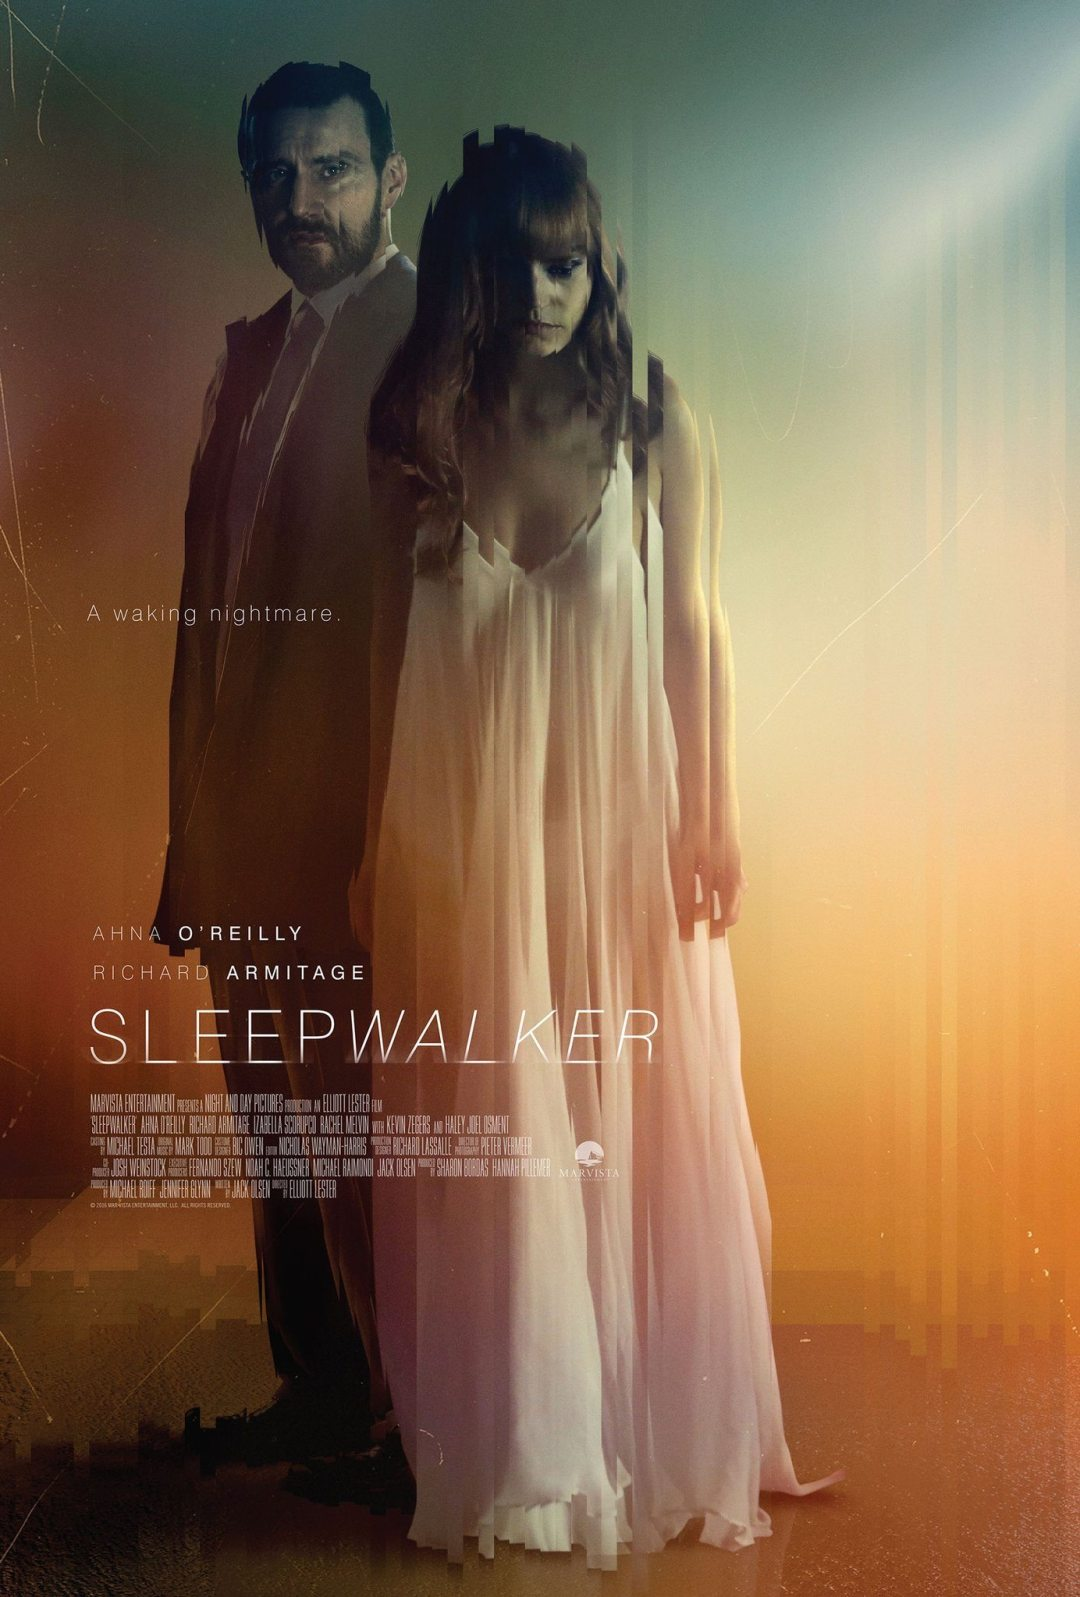 The Trailer for 'Sleepwalker' Will Keep You Up at Night!